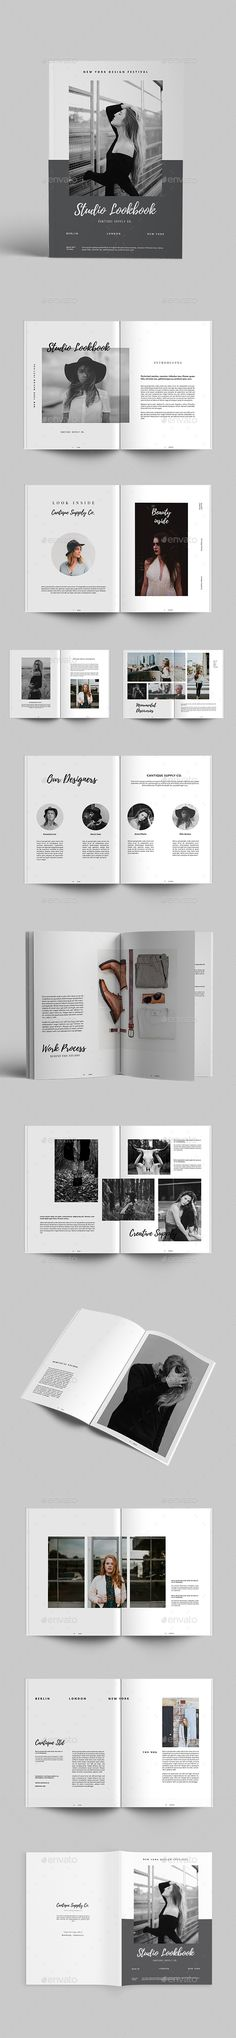 Studio Lookbook 24 Pages Template InDesign INDD - A4 + US Letter Size